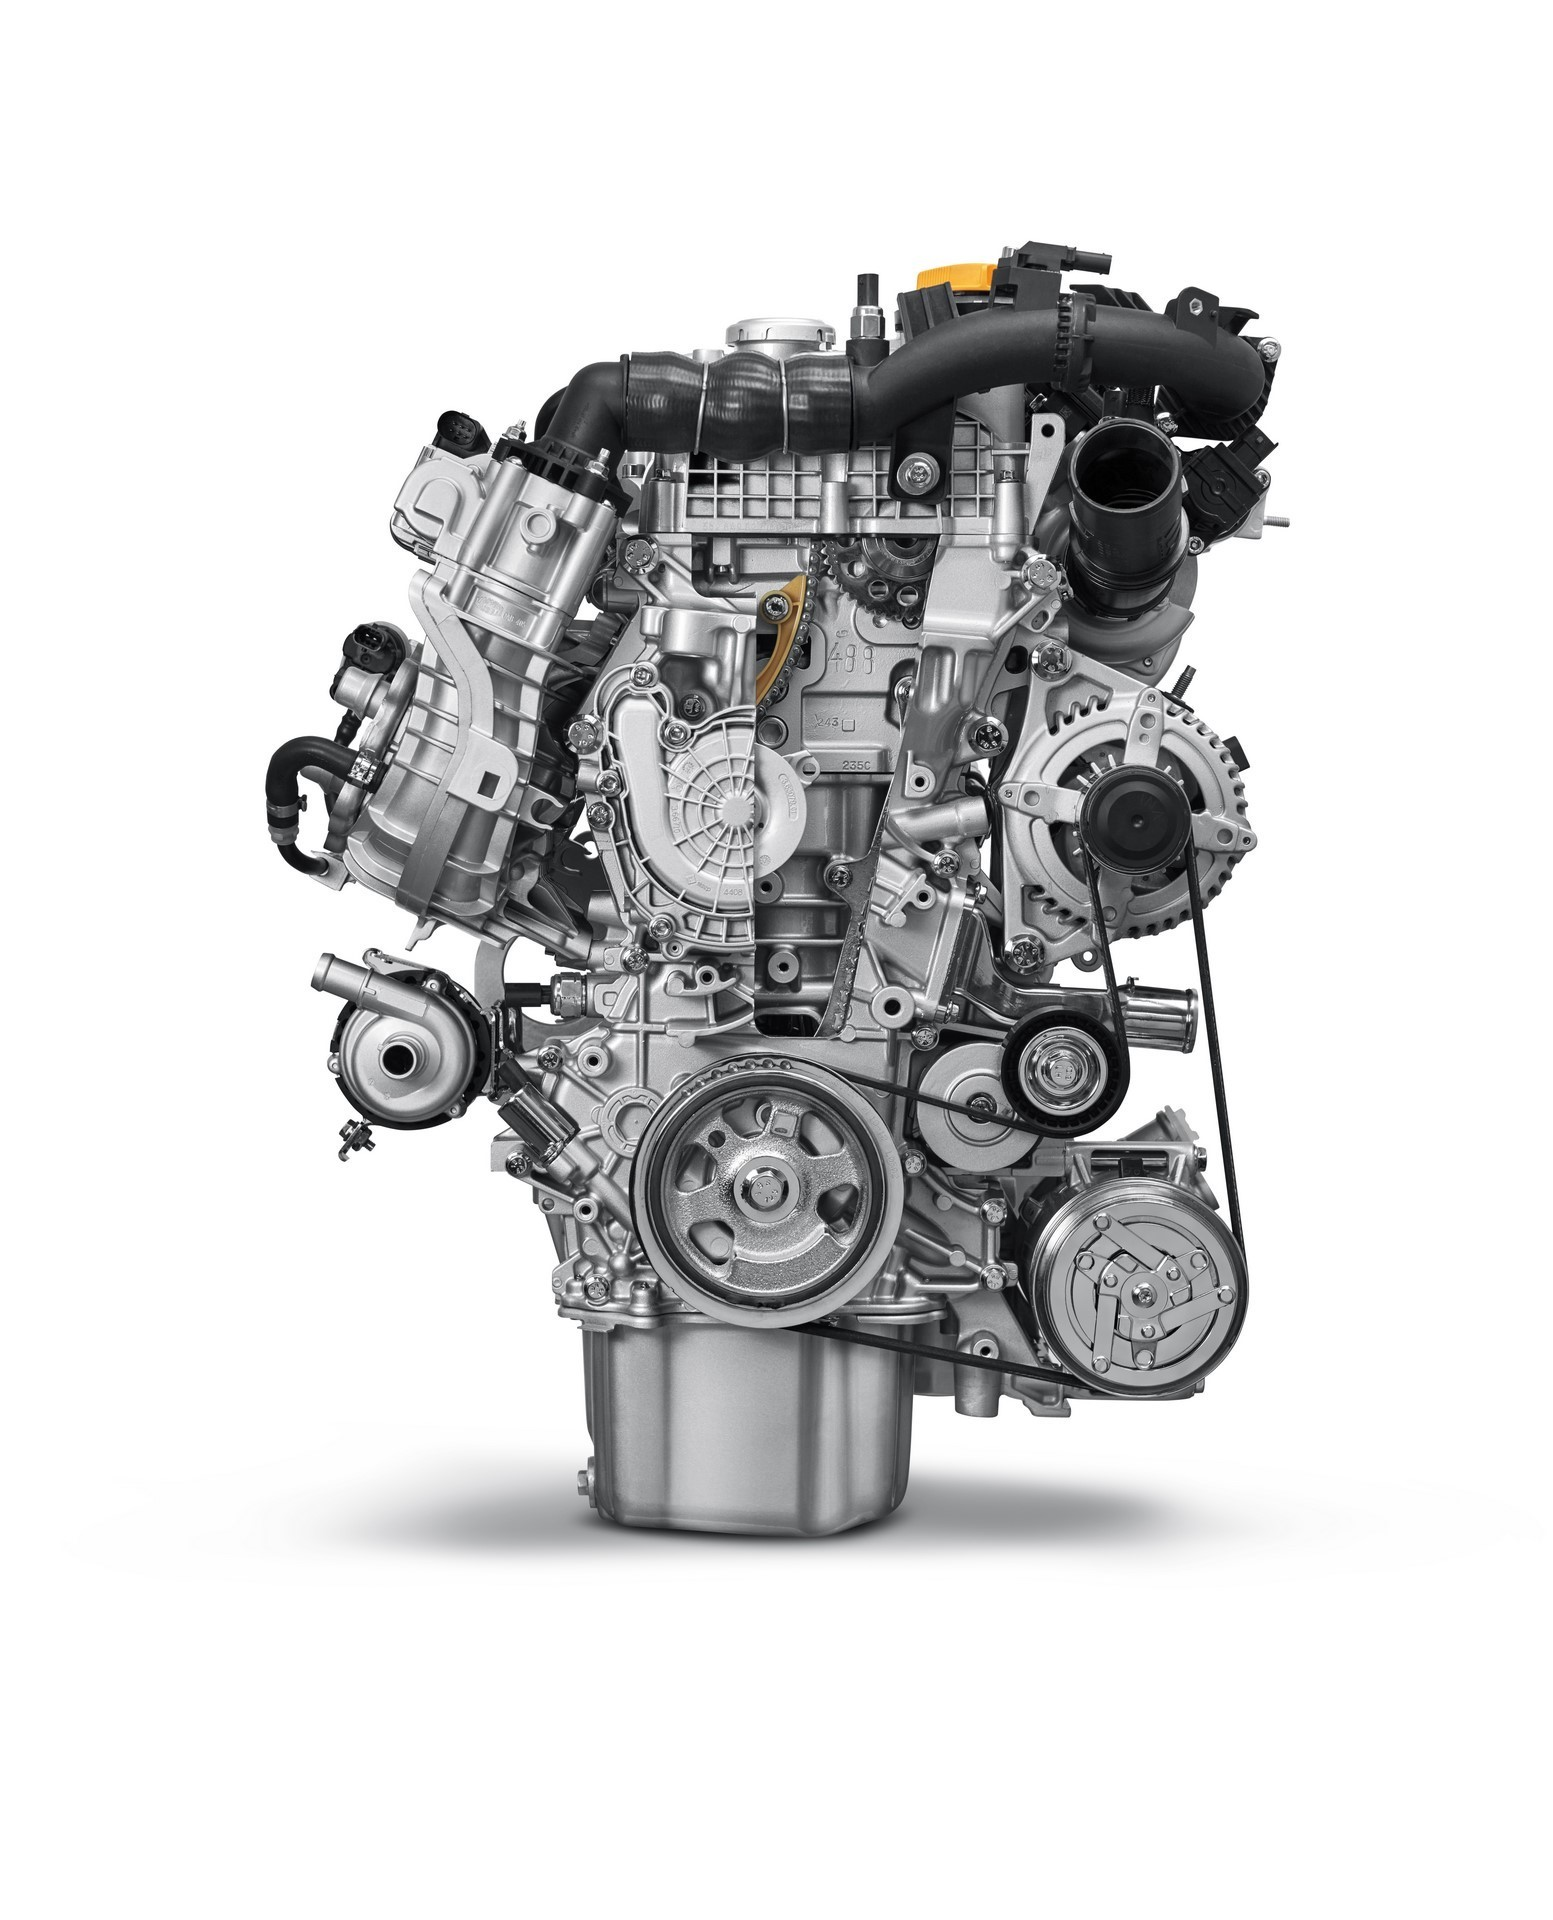 180828_Fiat_New-10L-Turbo-3-cylinder-120HP_01